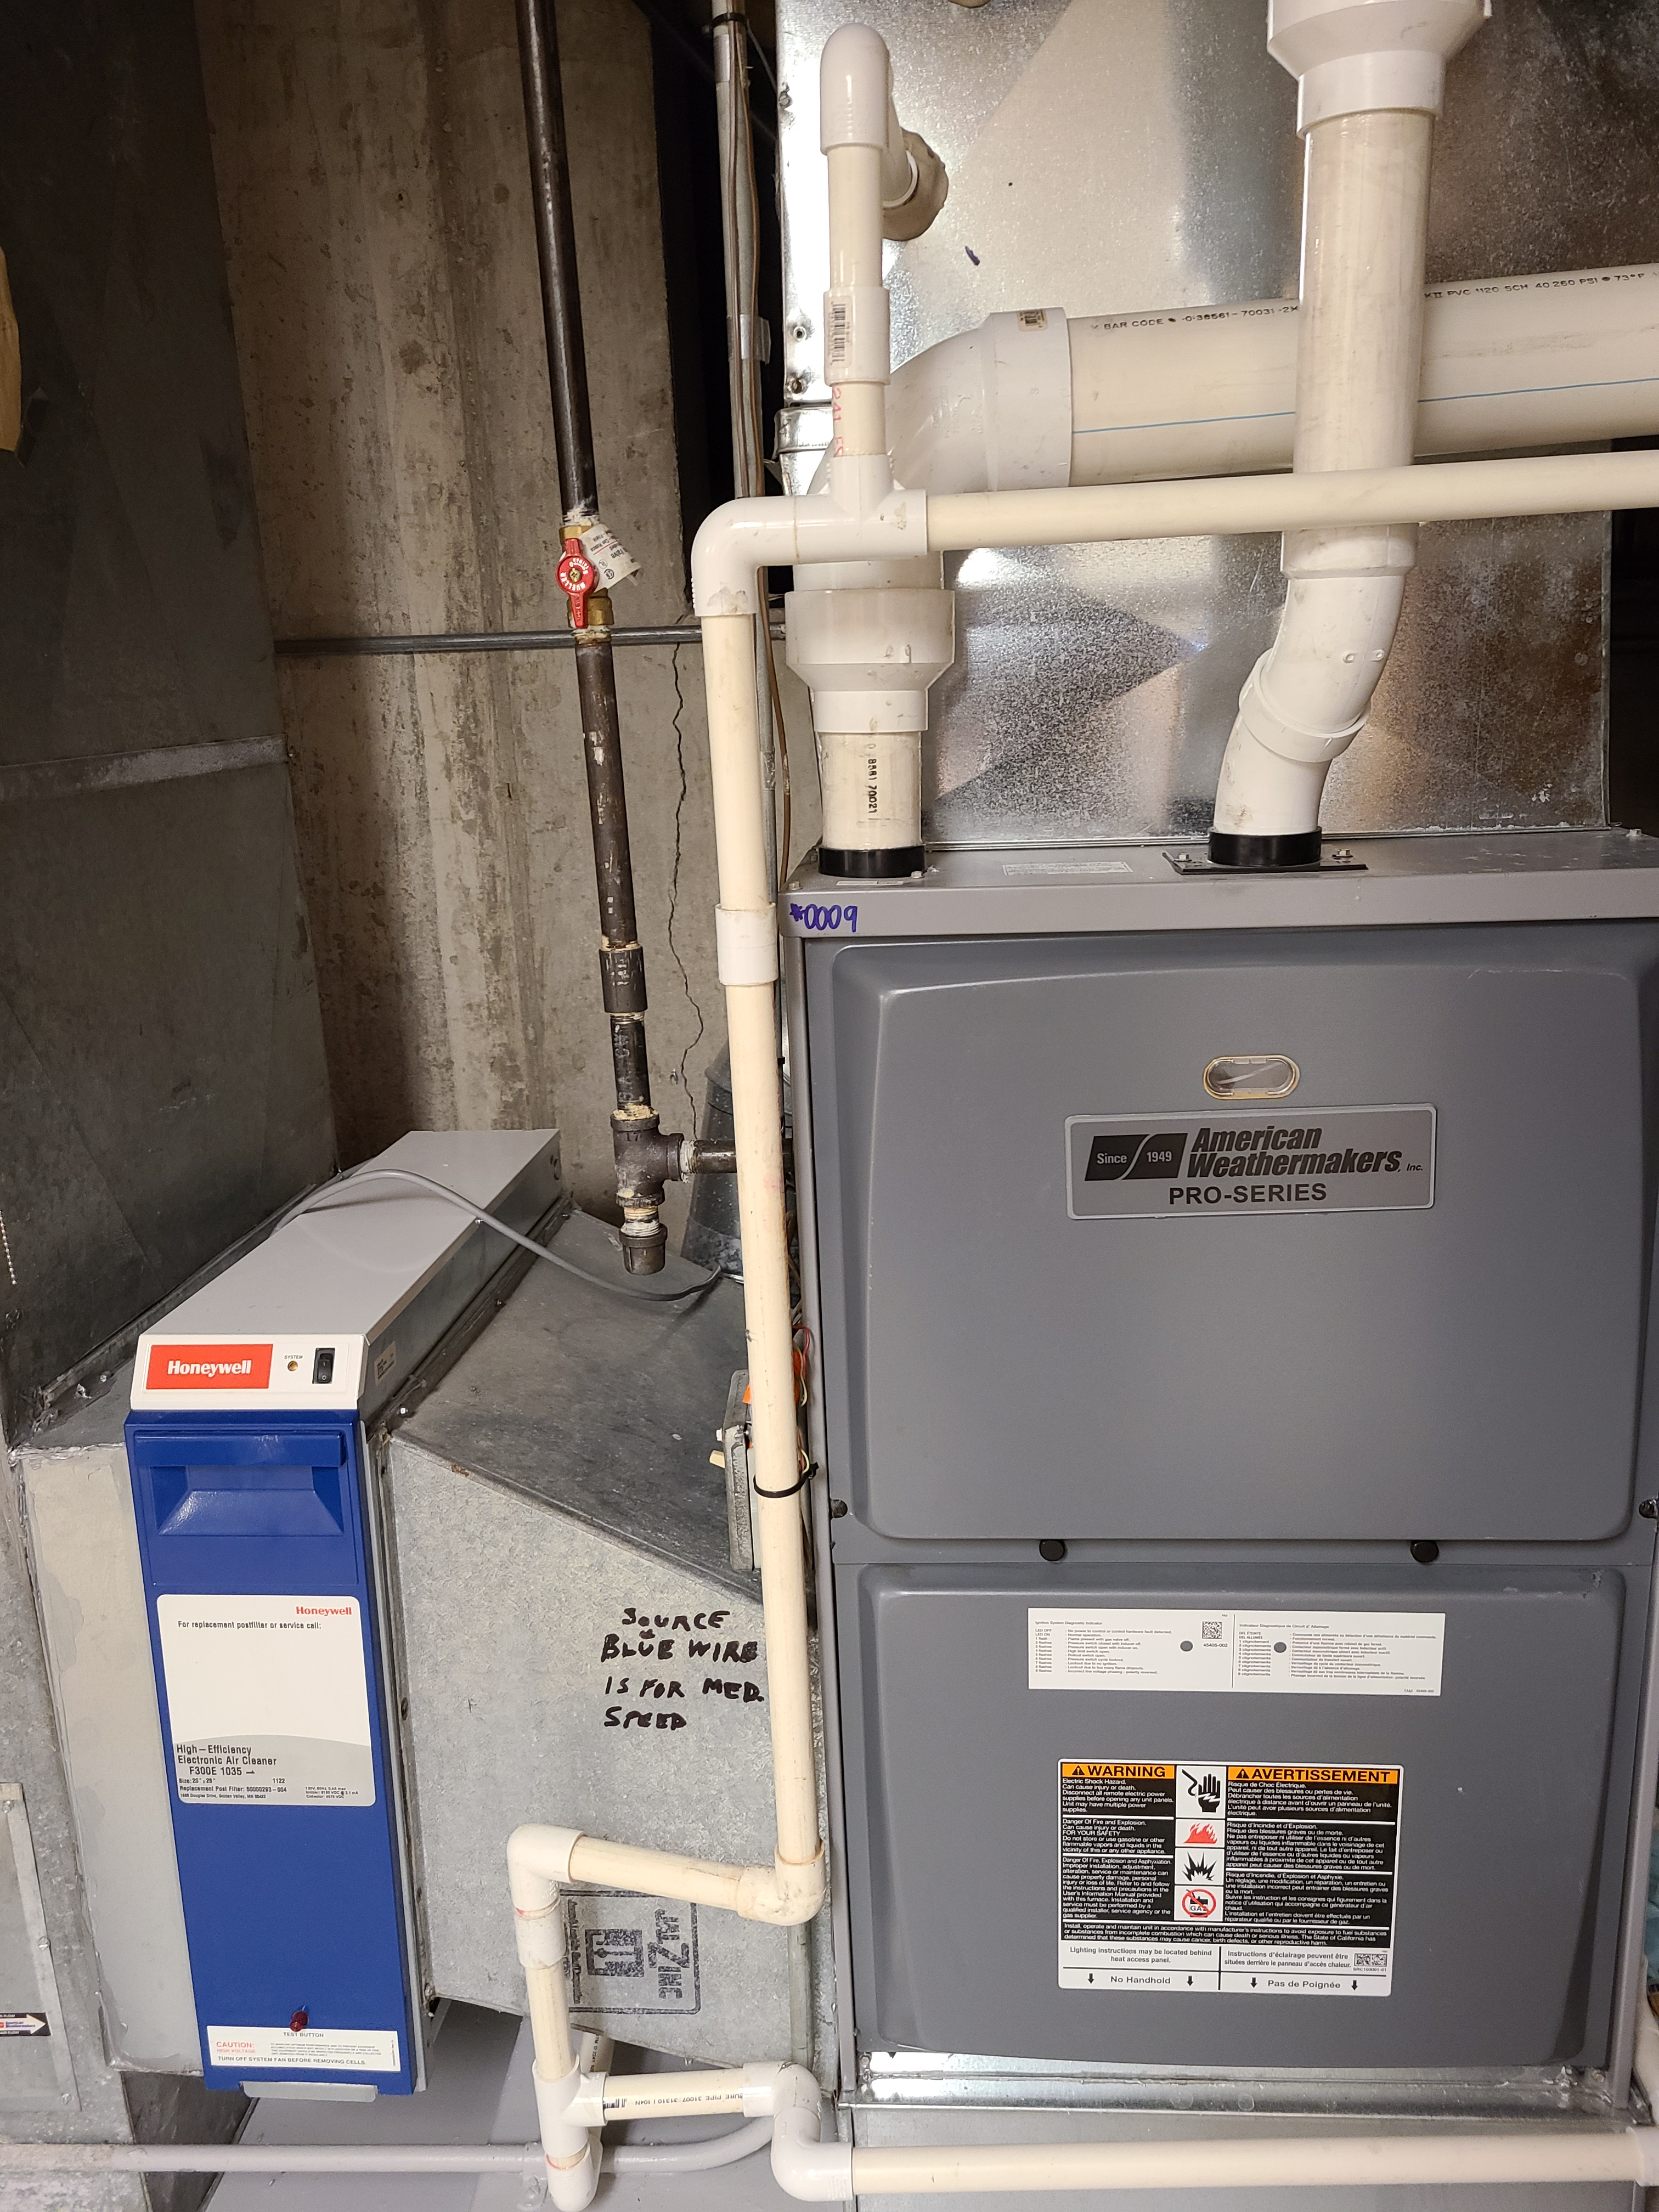 Performed annual maintenance on the American Weathermakers furnace, Honeywell air cleaner and Aprilaire humidifiers. Made adjustments to improve the efficiency and life expectancy of the equipment.